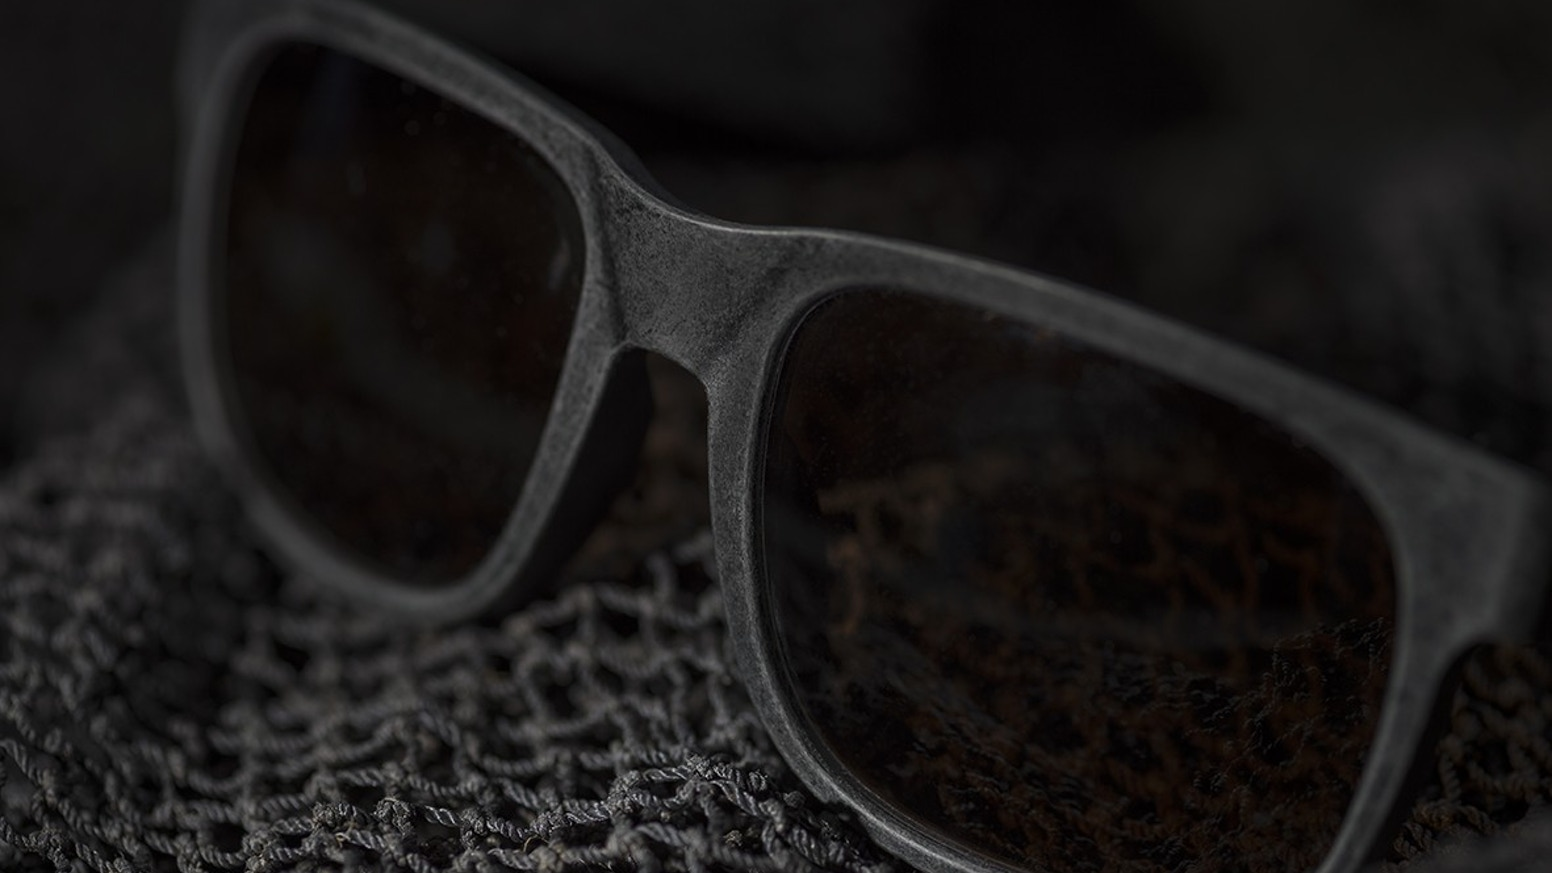 26a32e1ea4 Preventing discarded fishing nets from entering the ocean through the  creation of premium eyewear.